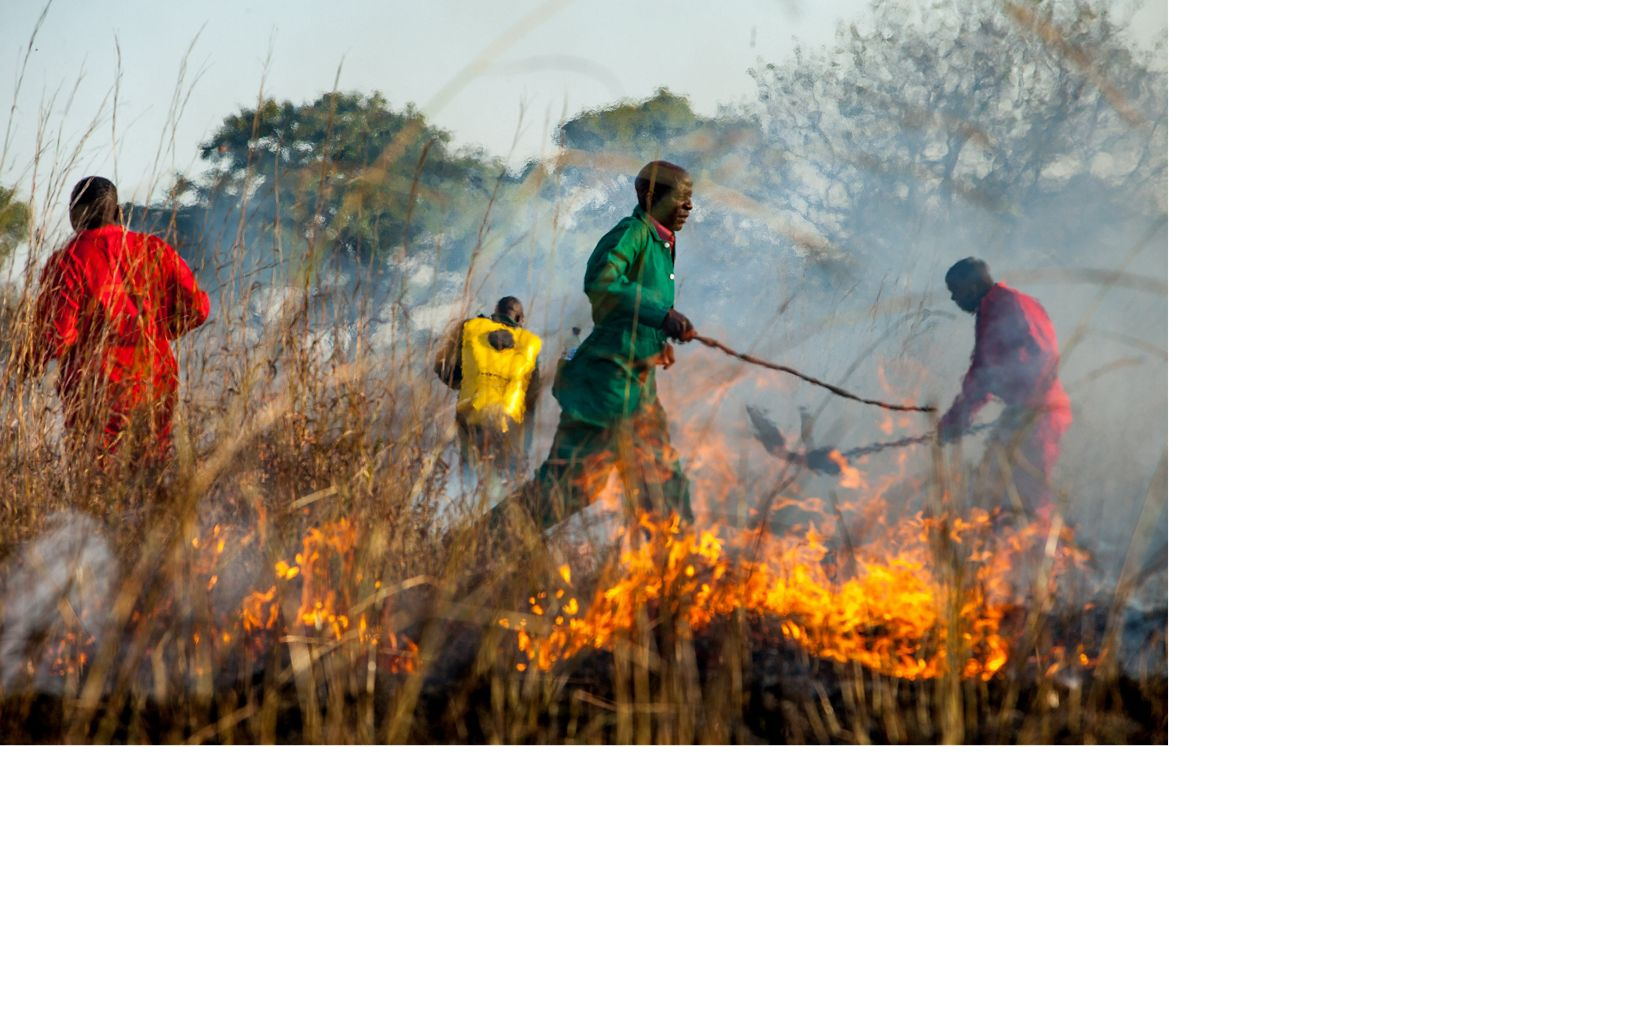 Participants carry out a prescribed 'black line' burn as part of practical exercise during fire management training in Kafue National Park, Zambia.